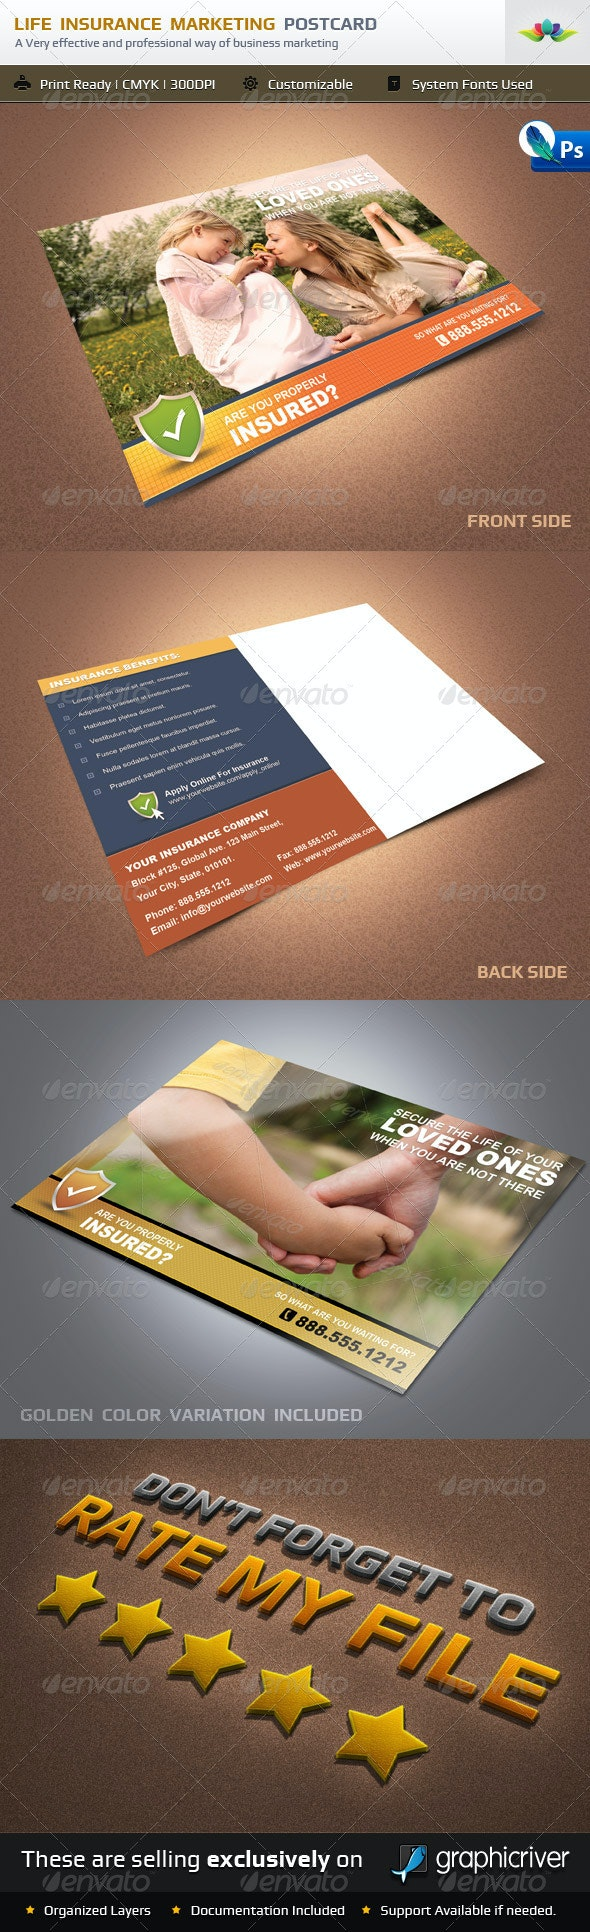 Life Insurance Marketing Postcard - Greeting Cards Cards & Invites